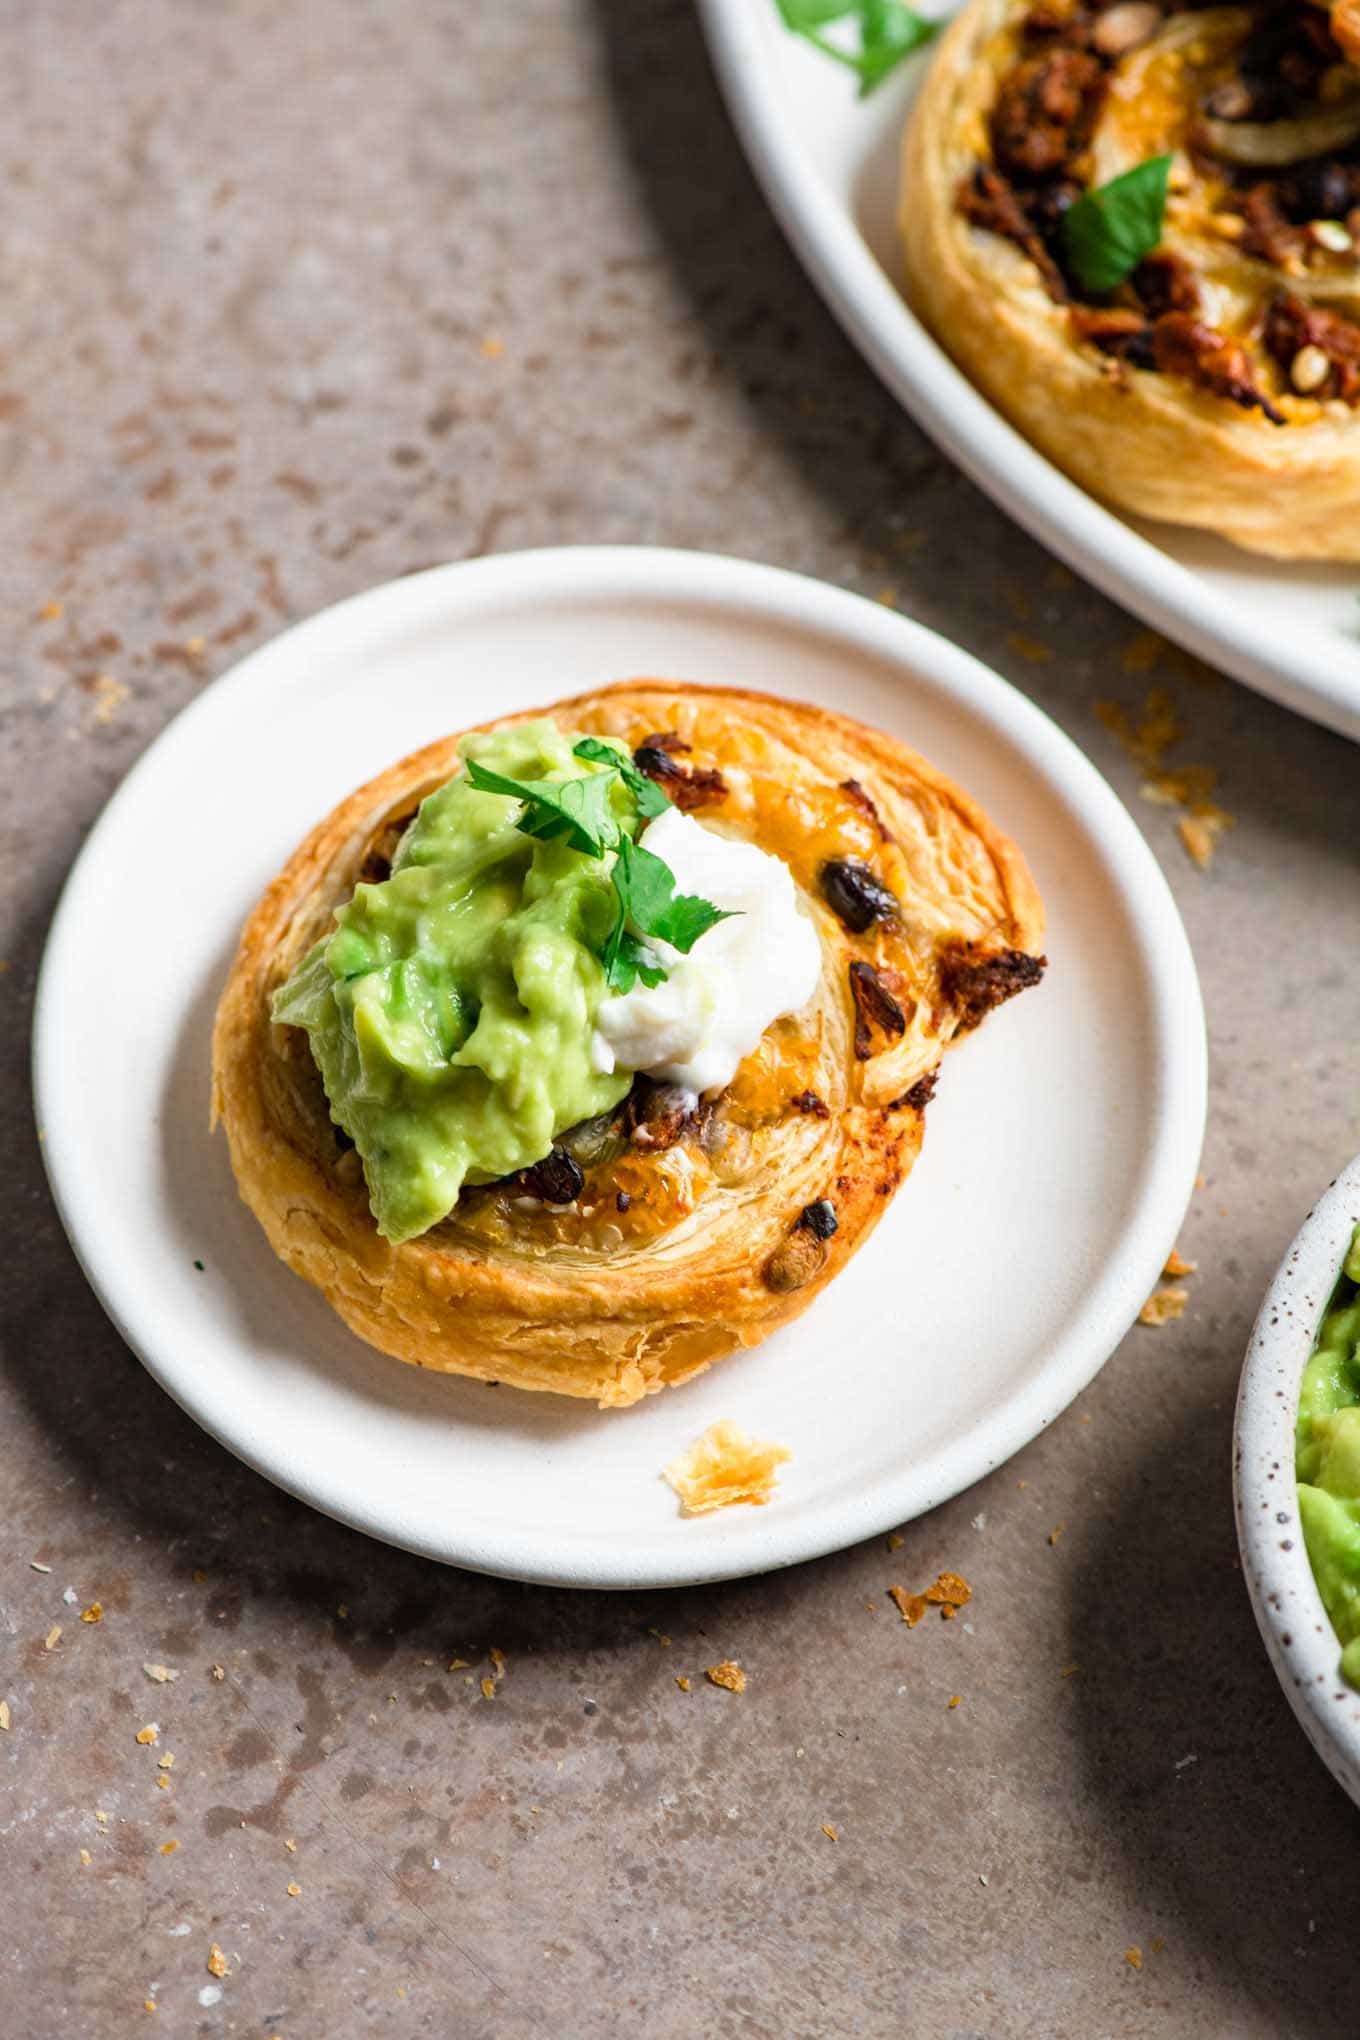 pinwheel topped with guacamole and vegan sour cream